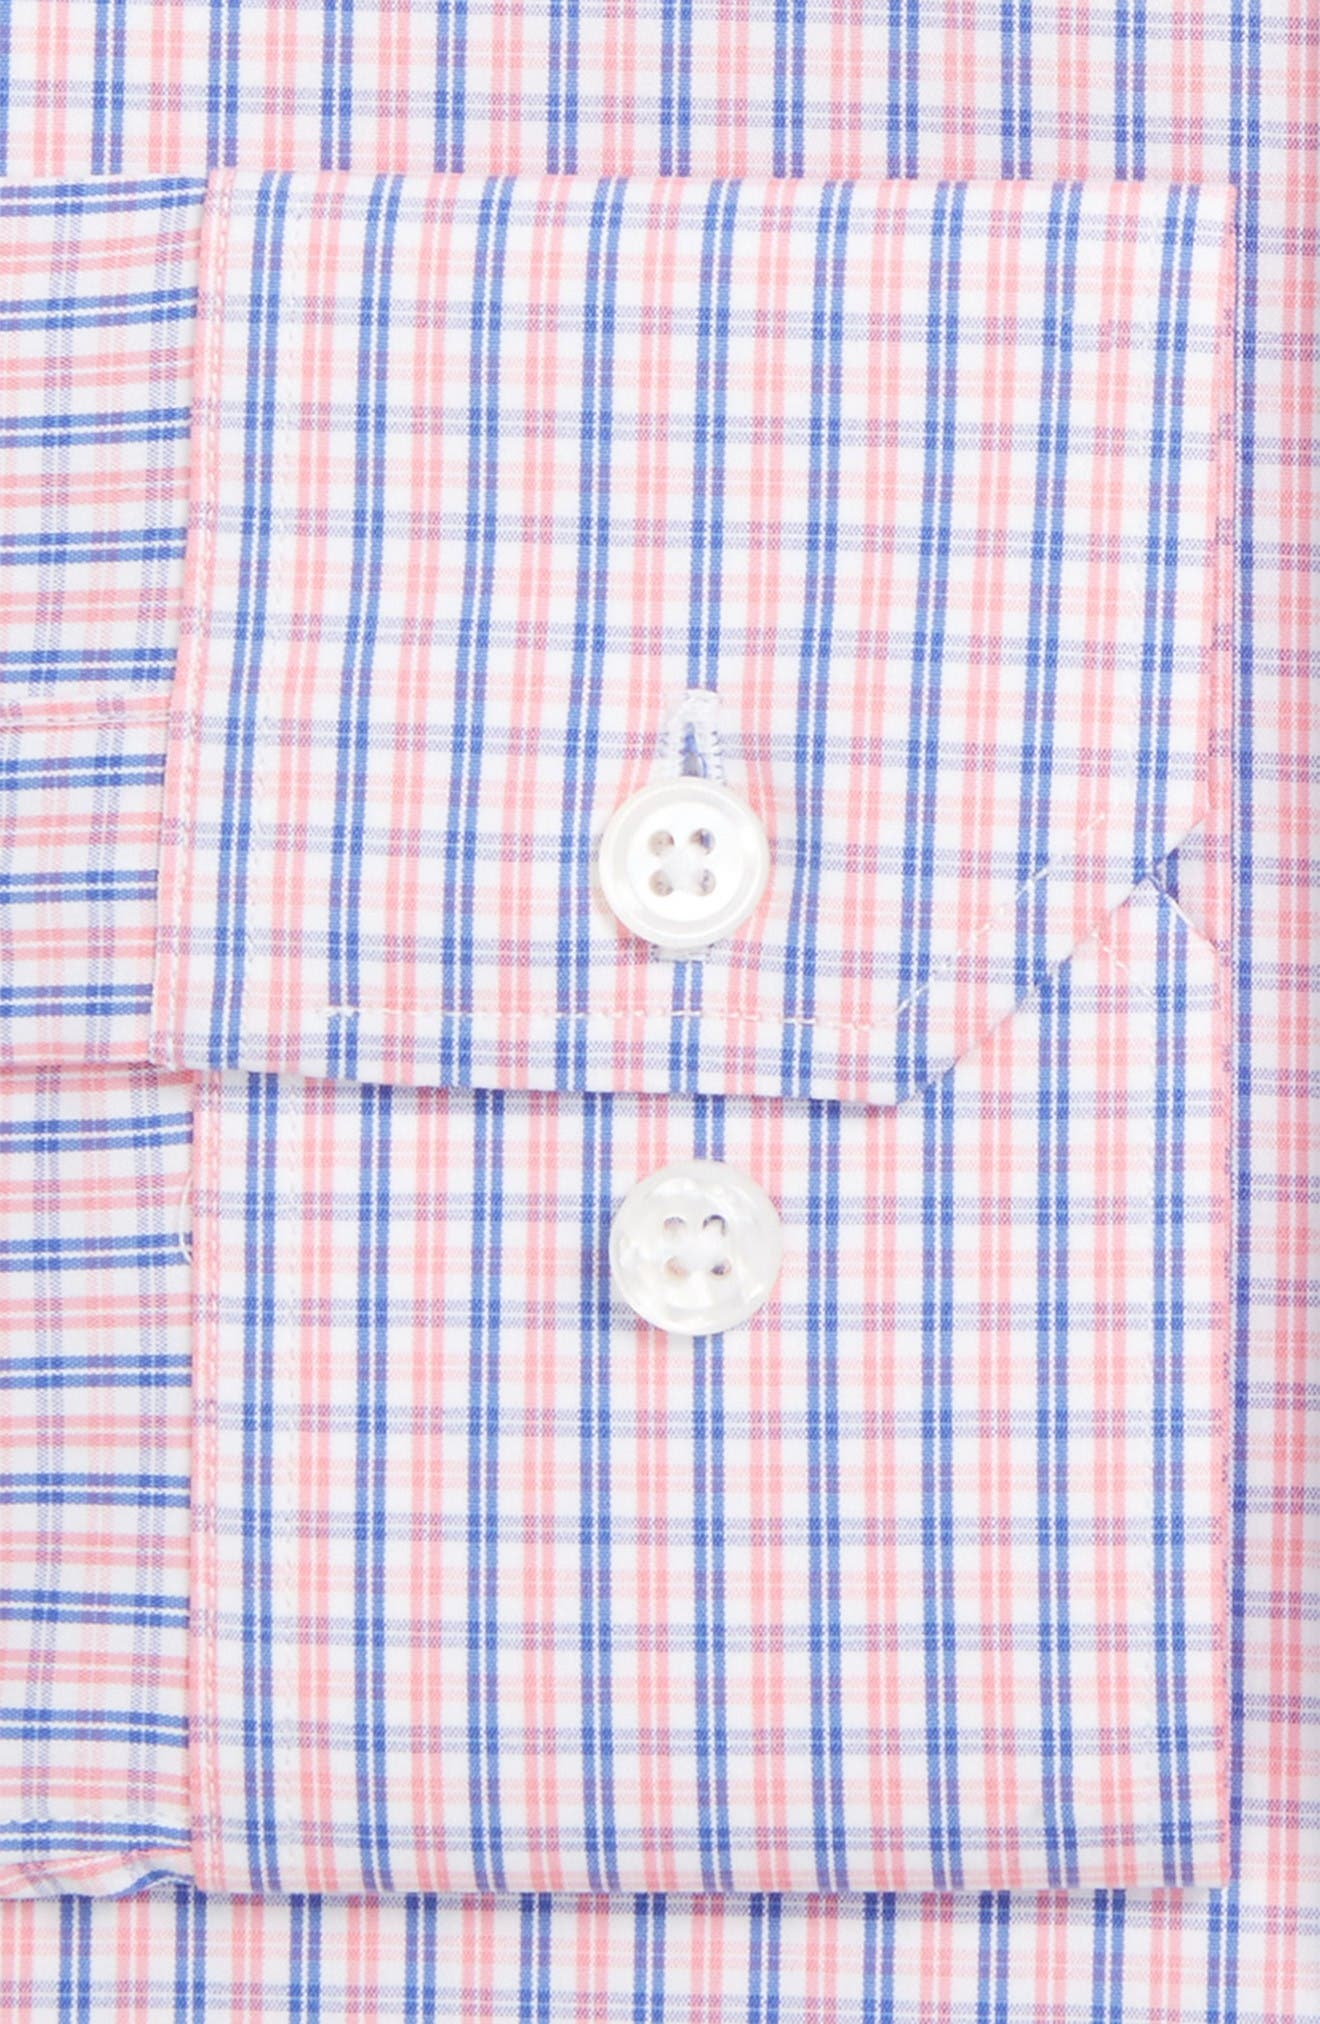 Jetsetter Slim Fit Check Stretch Dress Shirt,                             Alternate thumbnail 2, color,                             Pink Wright